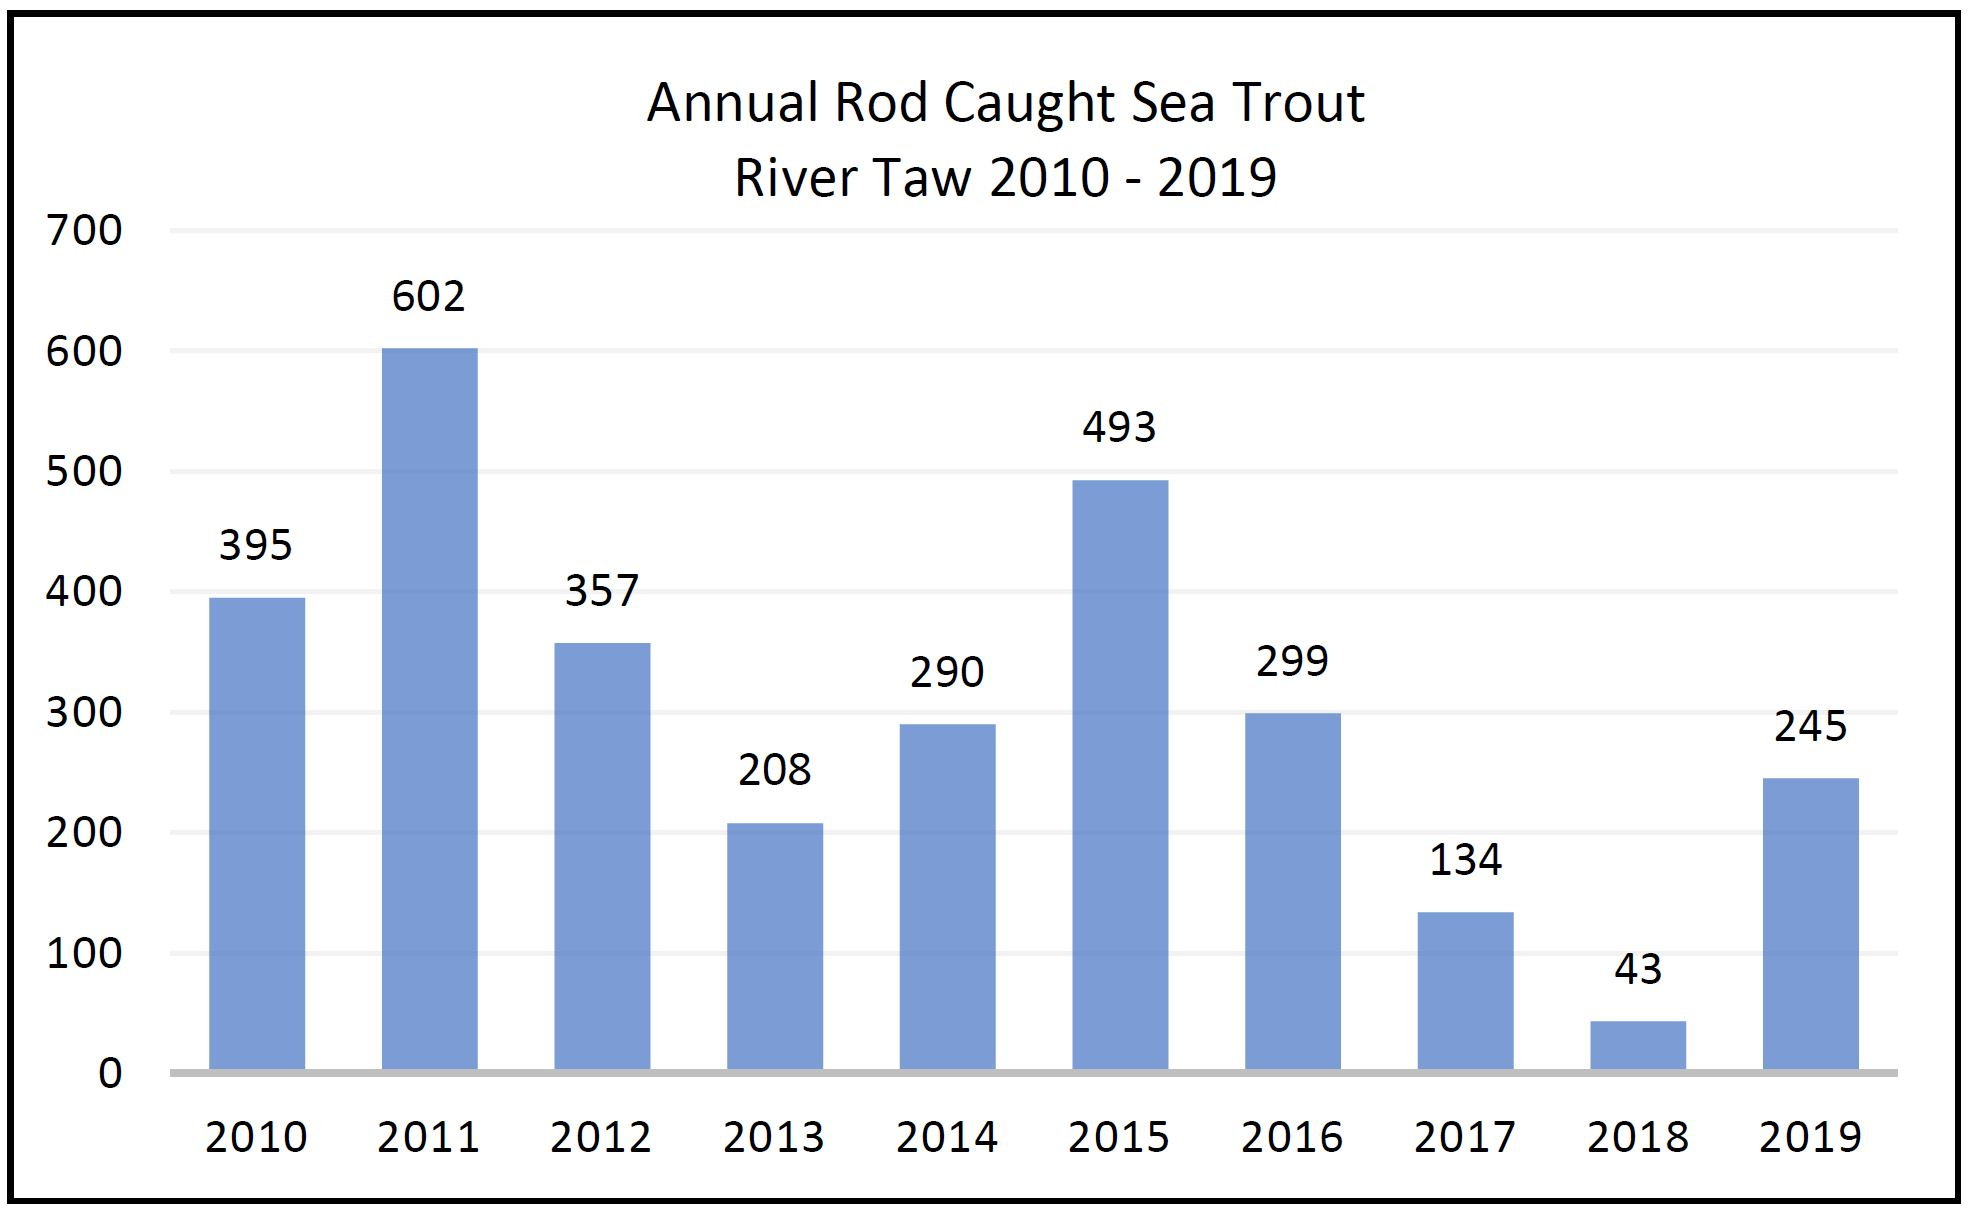 Annual Rod Caught Sea Trout - River Taw - 2010 to 2019